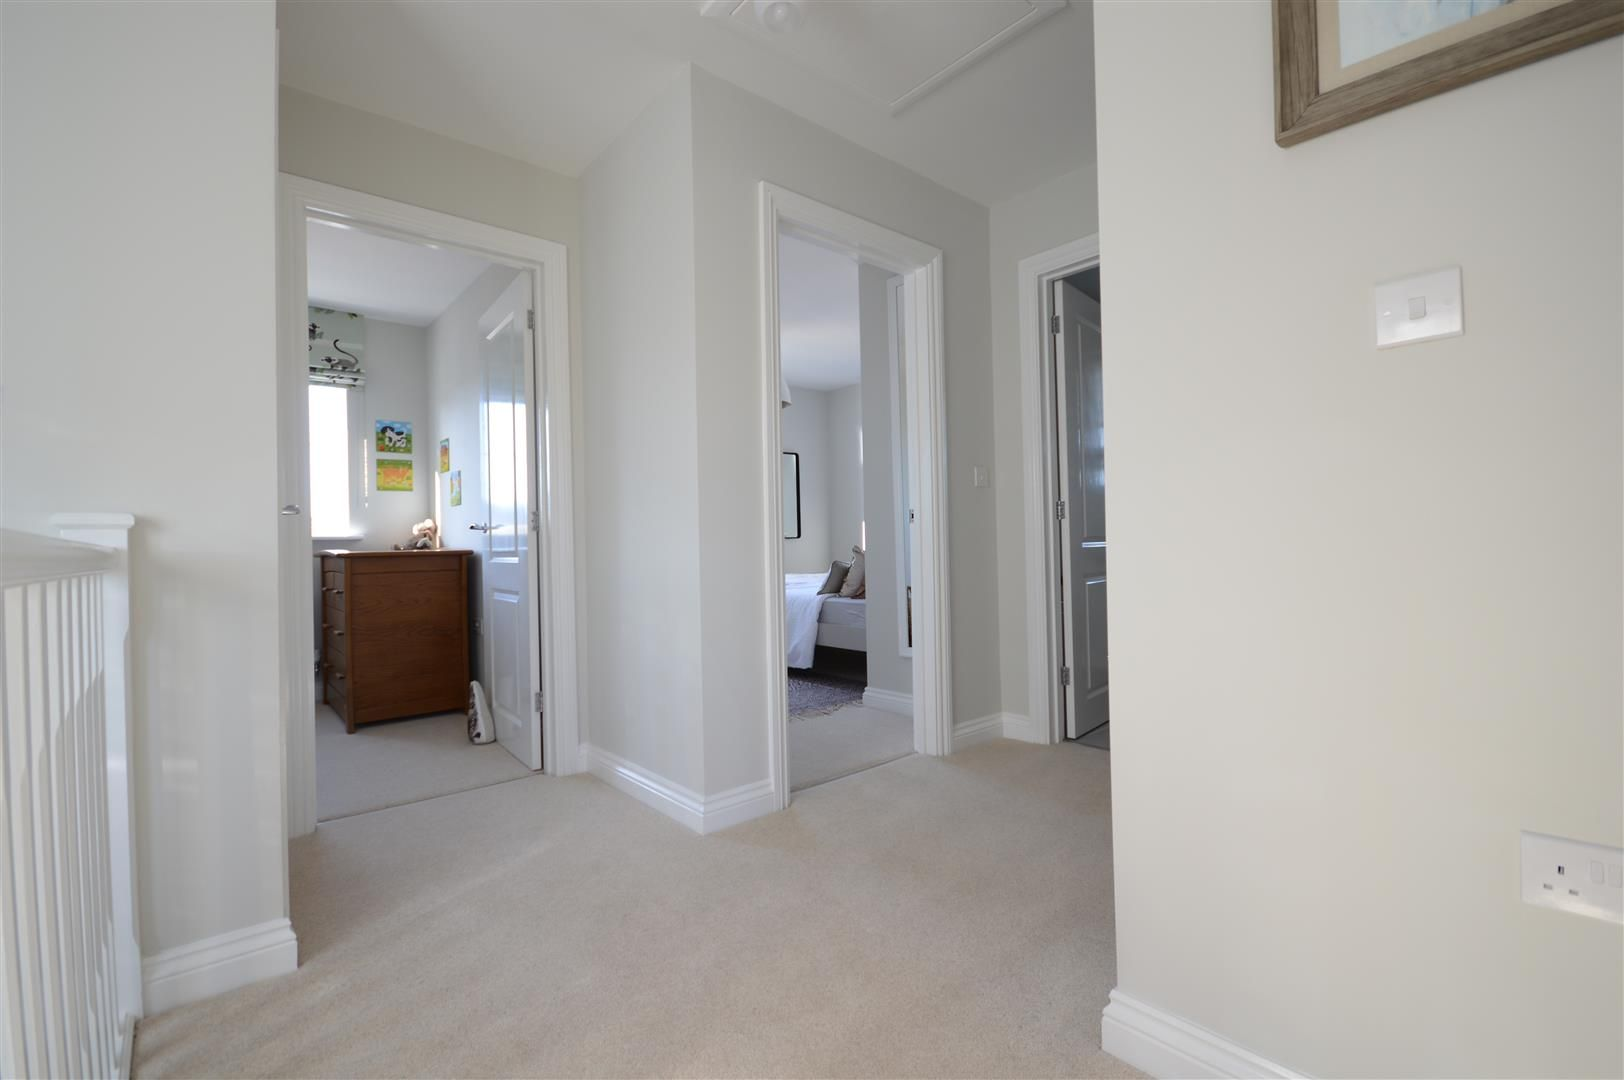 4 bed detached for sale in Kingstone  - Property Image 6